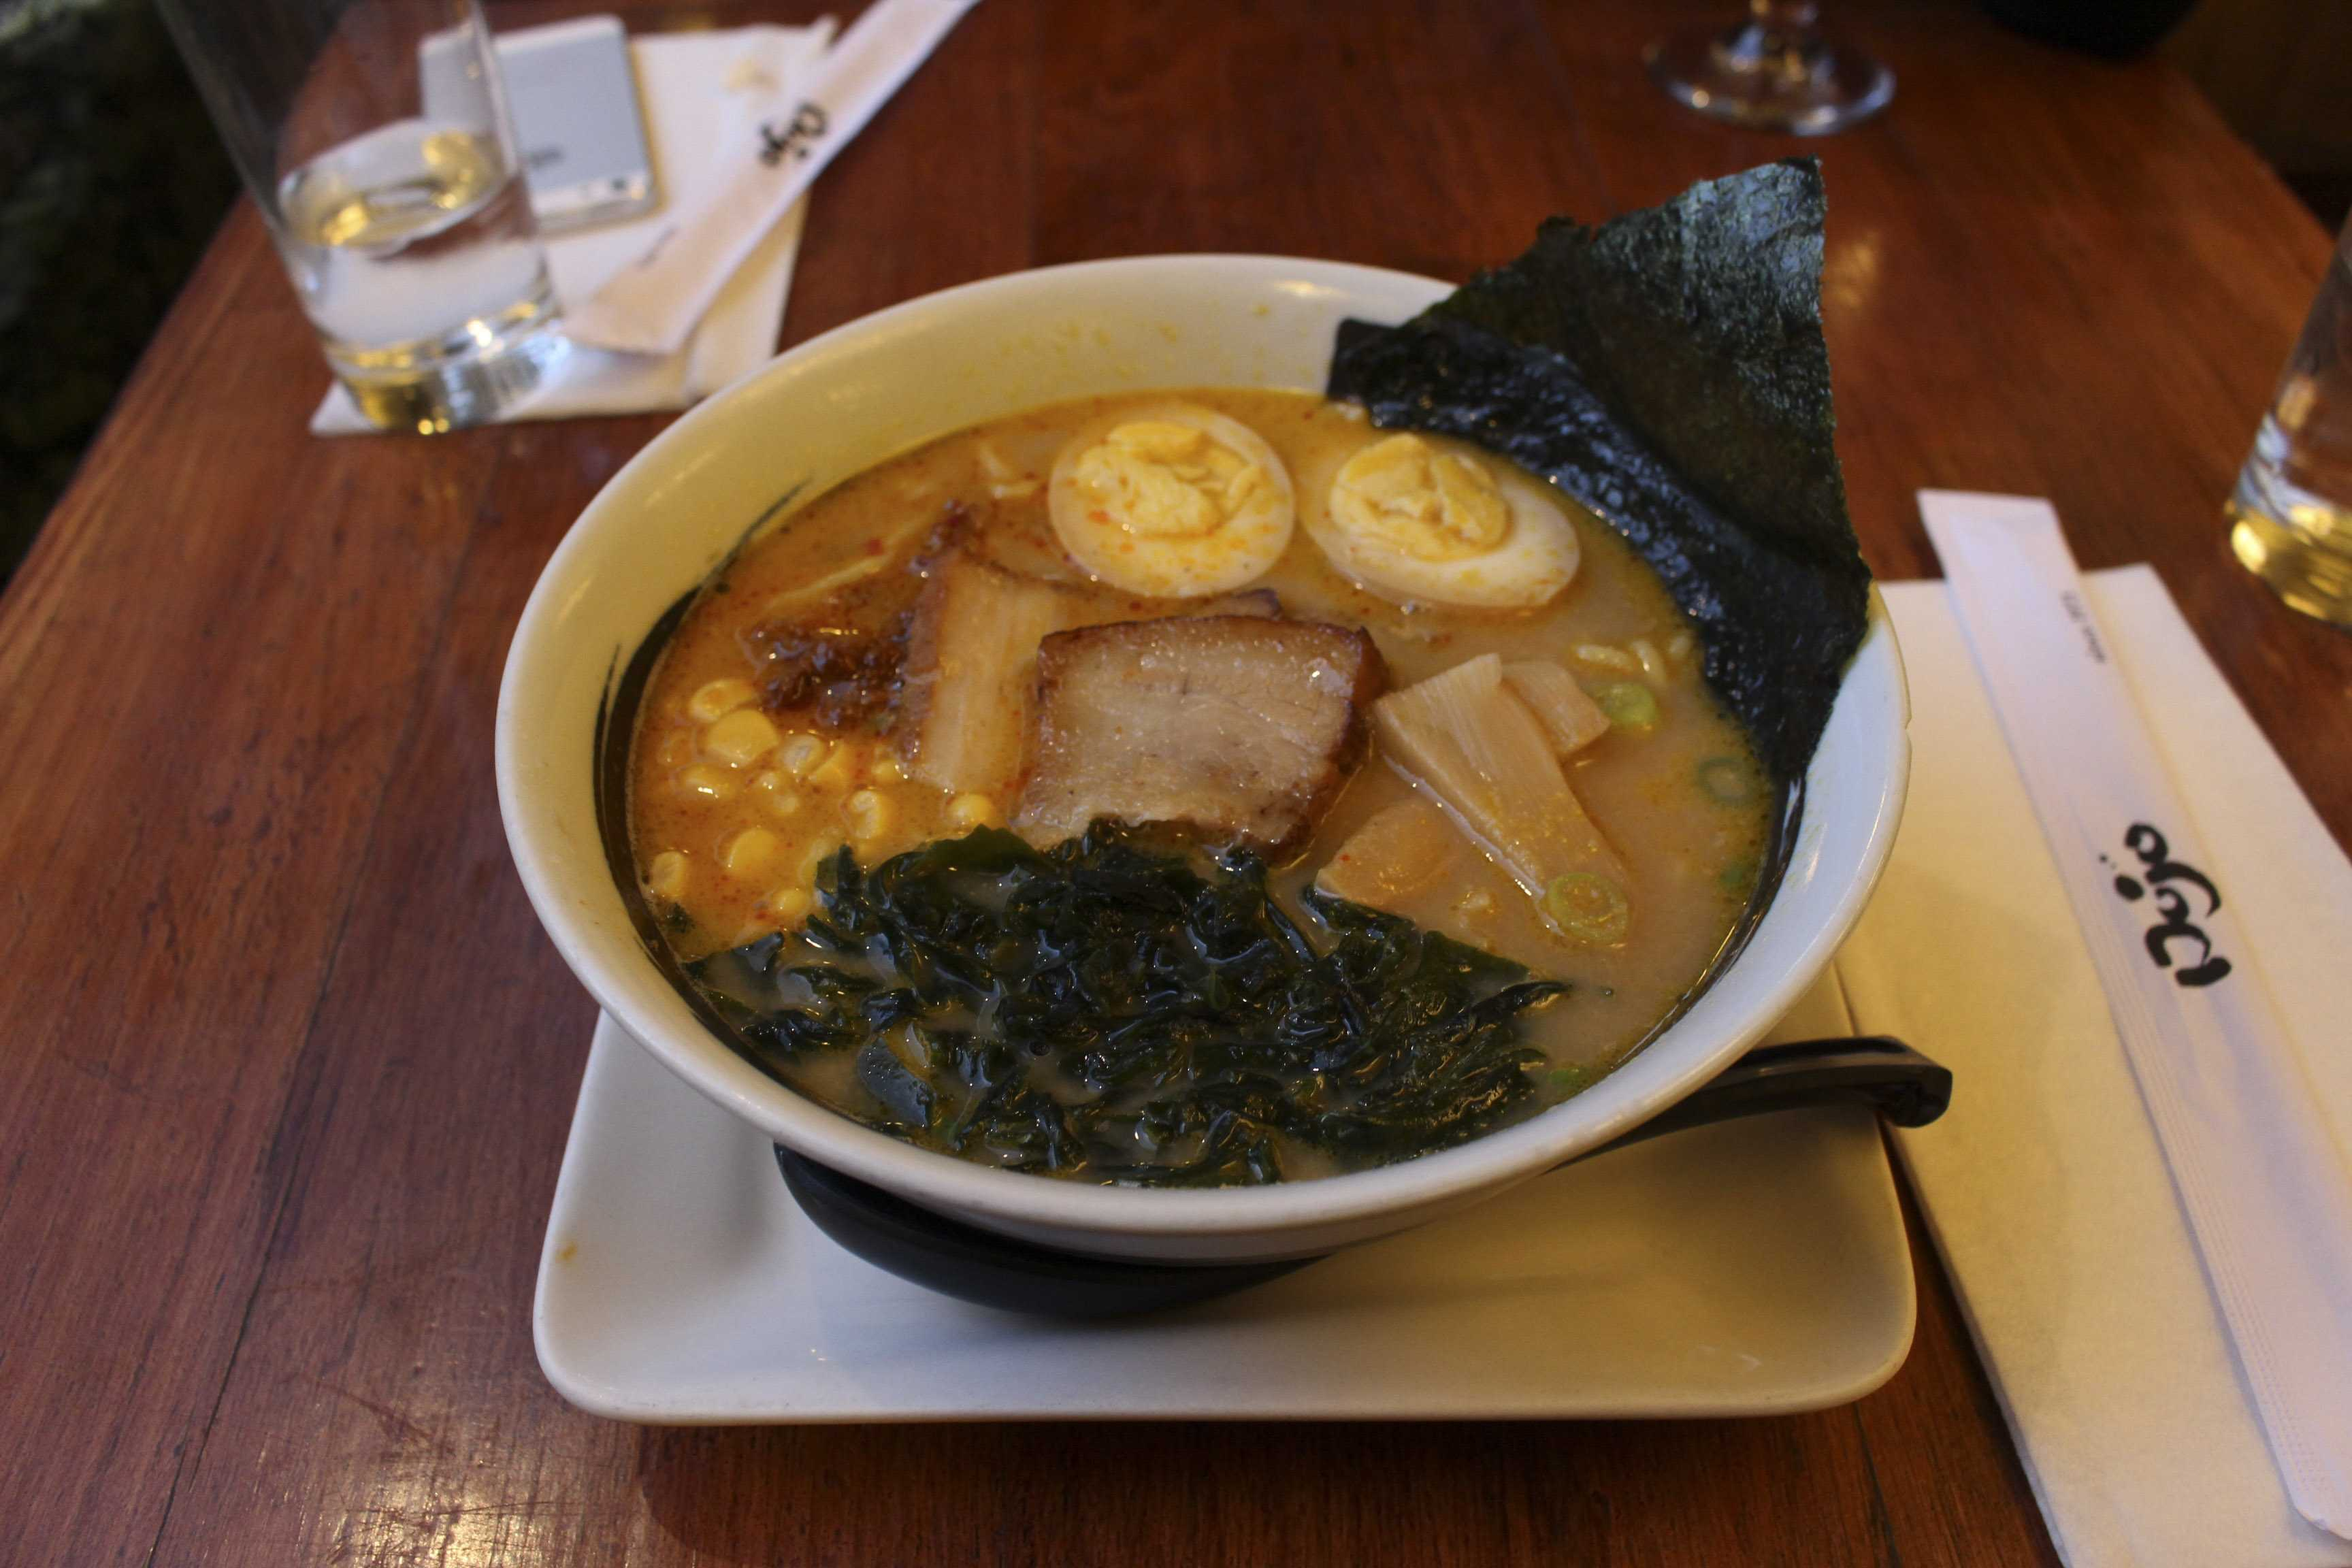 For only $13, the miso ramen at Dojo includes corn, scallions, seaweed, bamboo shoots, an egg, pork belly, and enough noodles to fill anyone up.